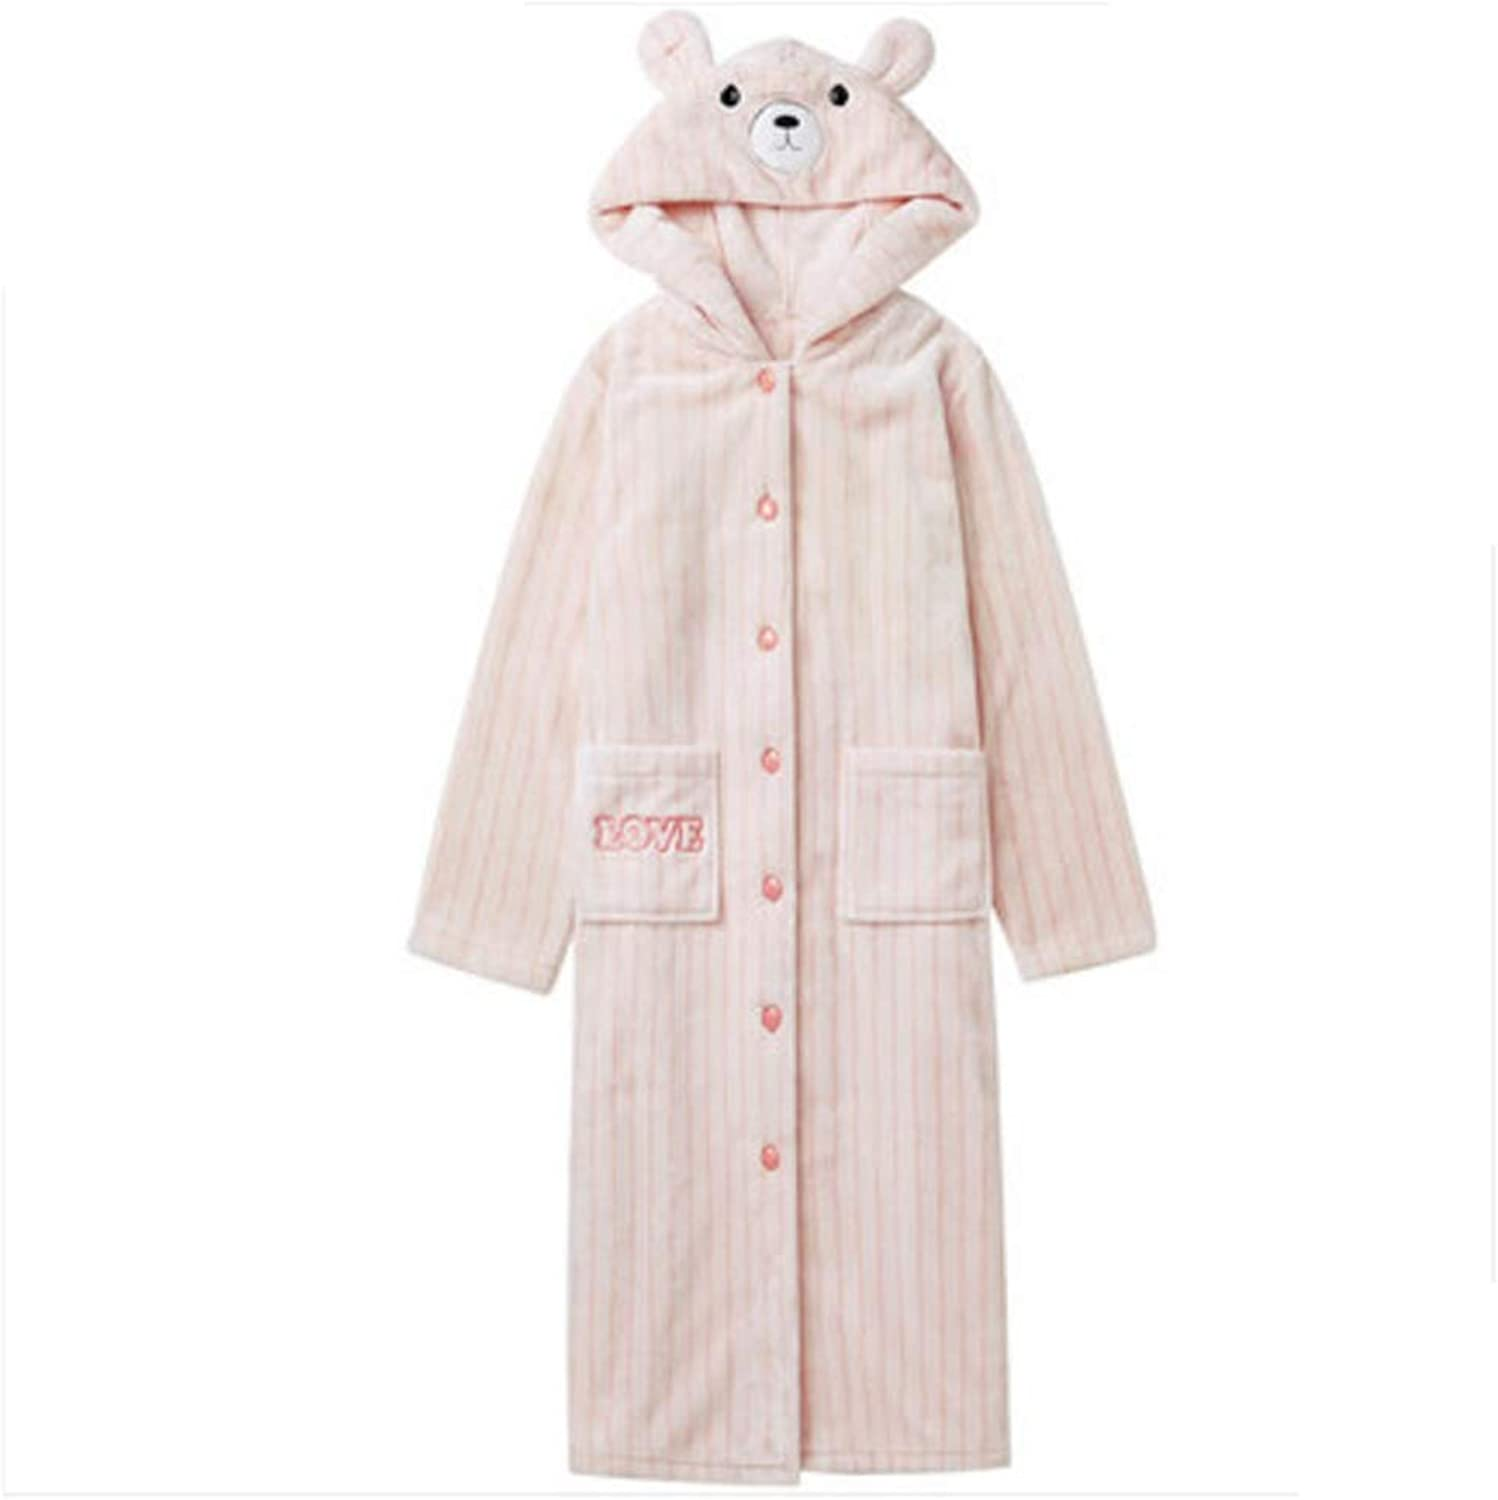 NAN Liang Ladies Luxury Hooded Cute Nightgown Home Service Soft (Size   L)